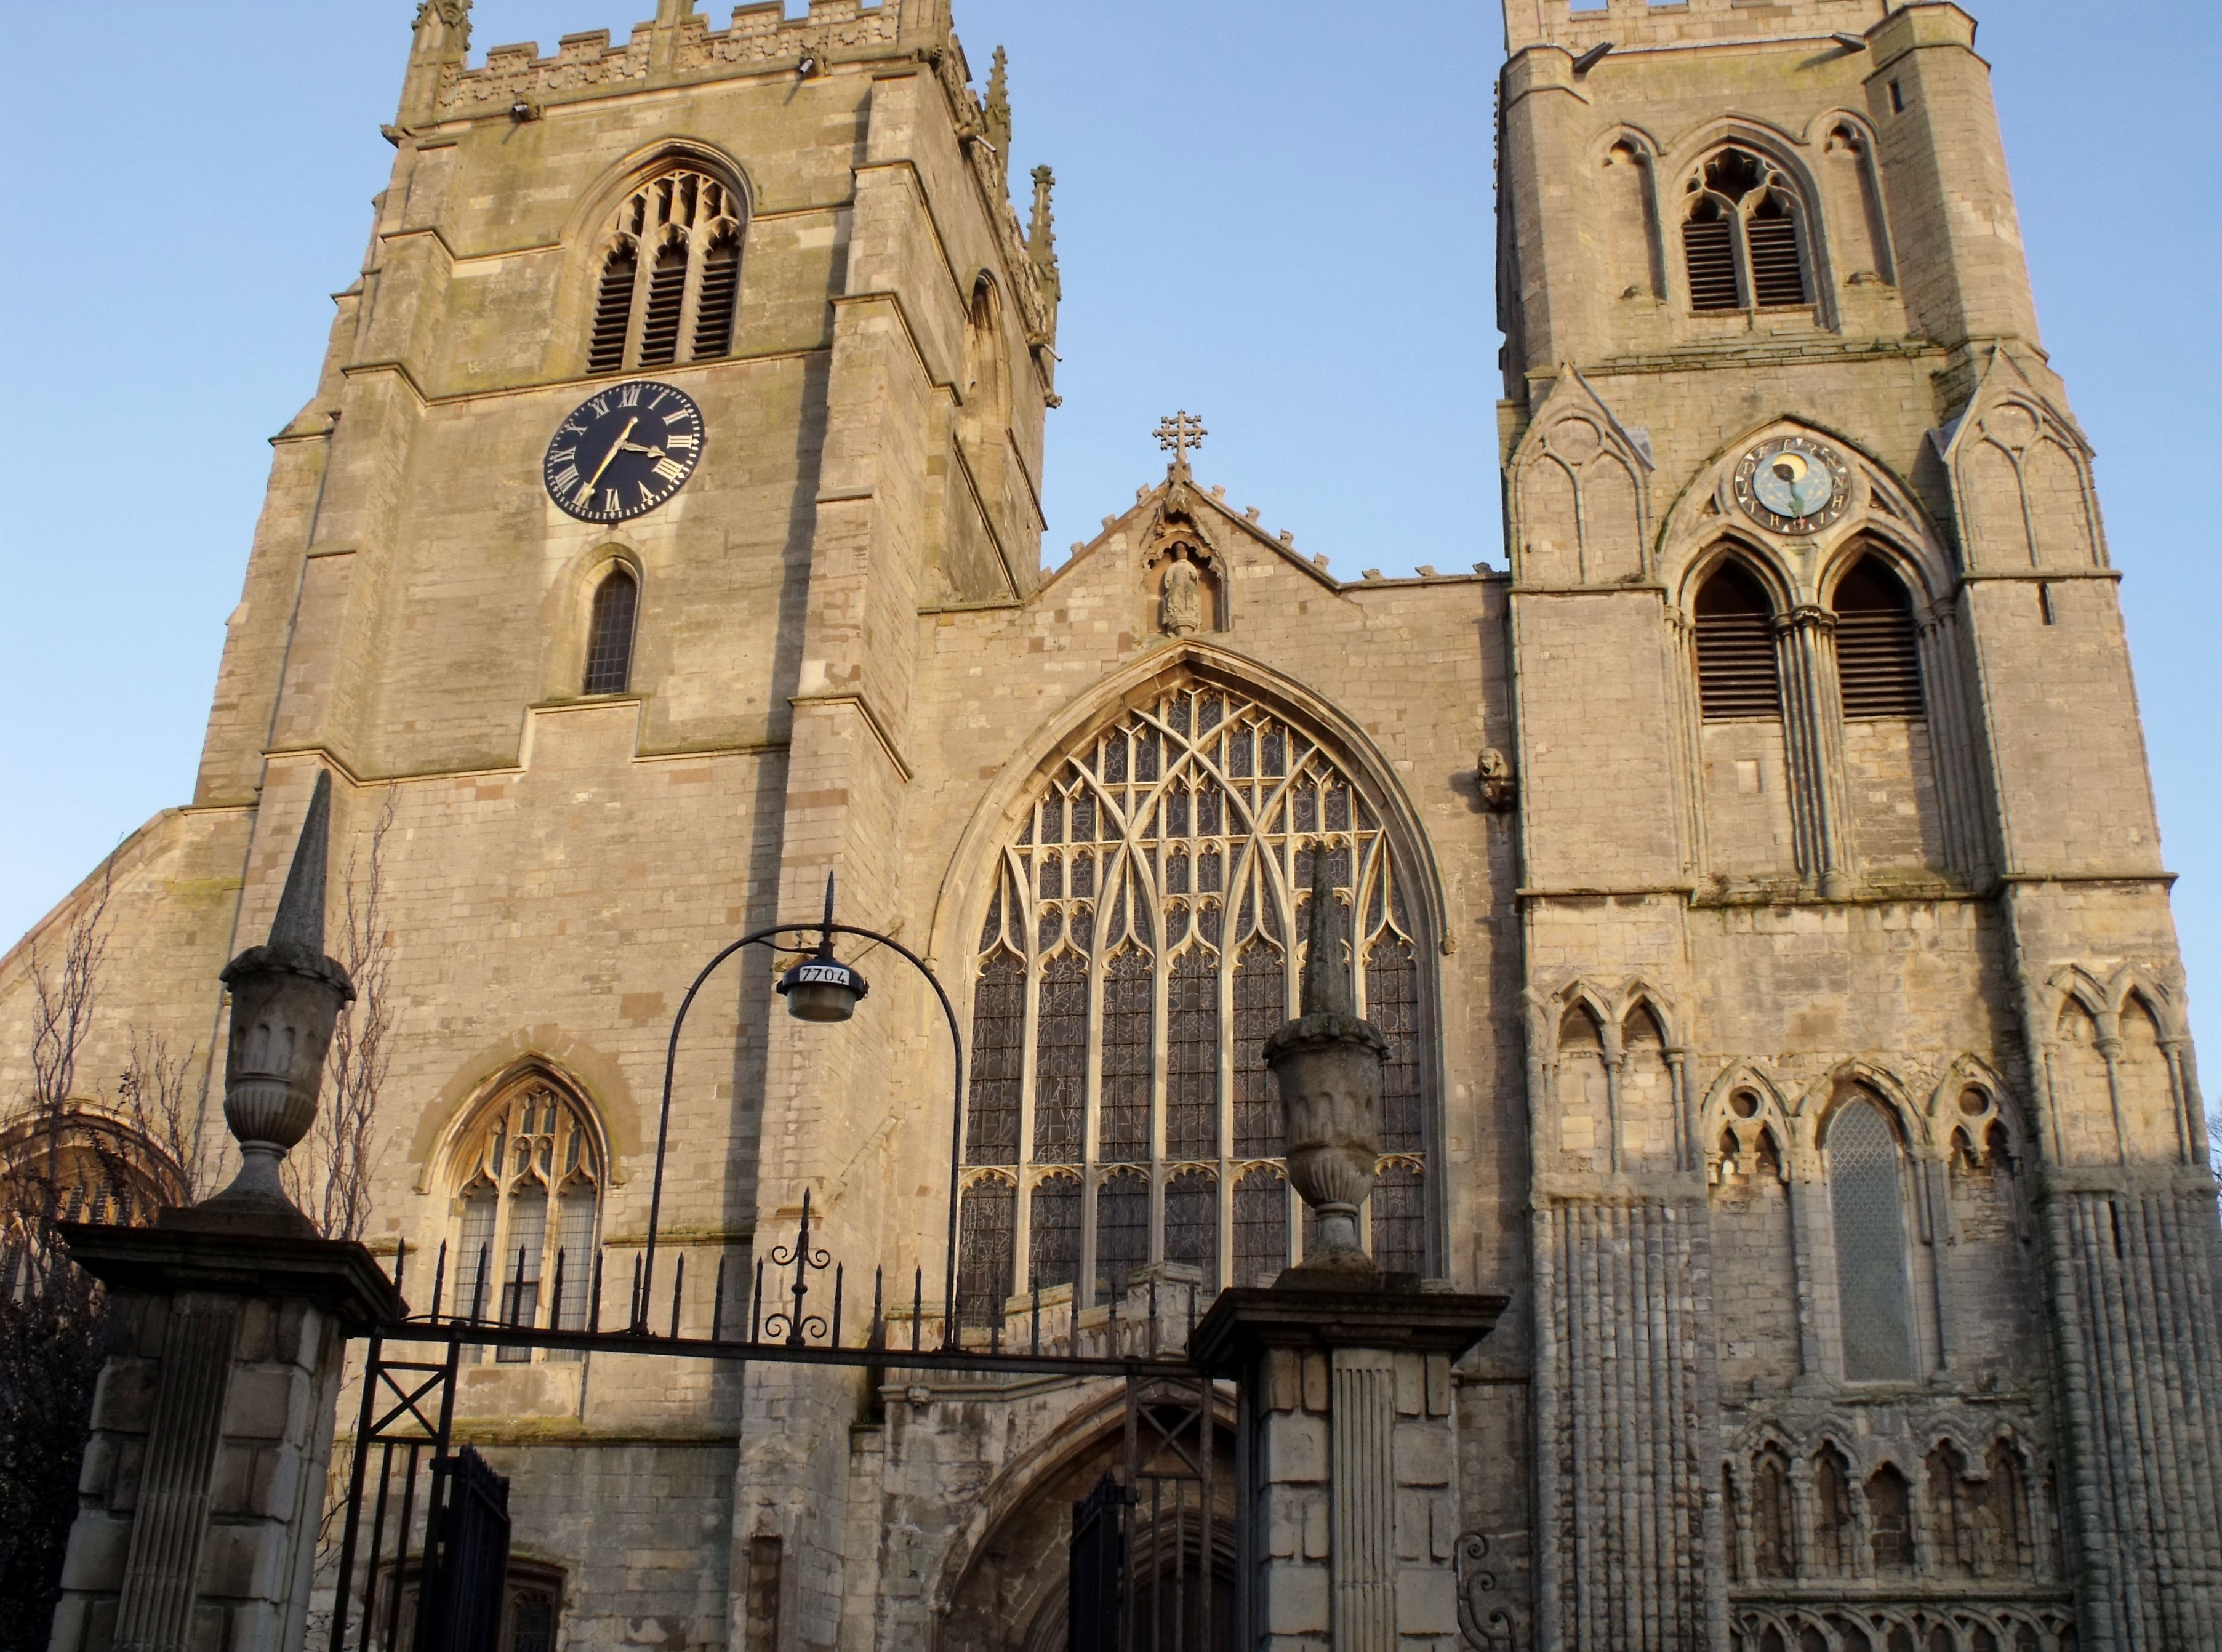 My king s lynn photography st margaret s sitting on the dock